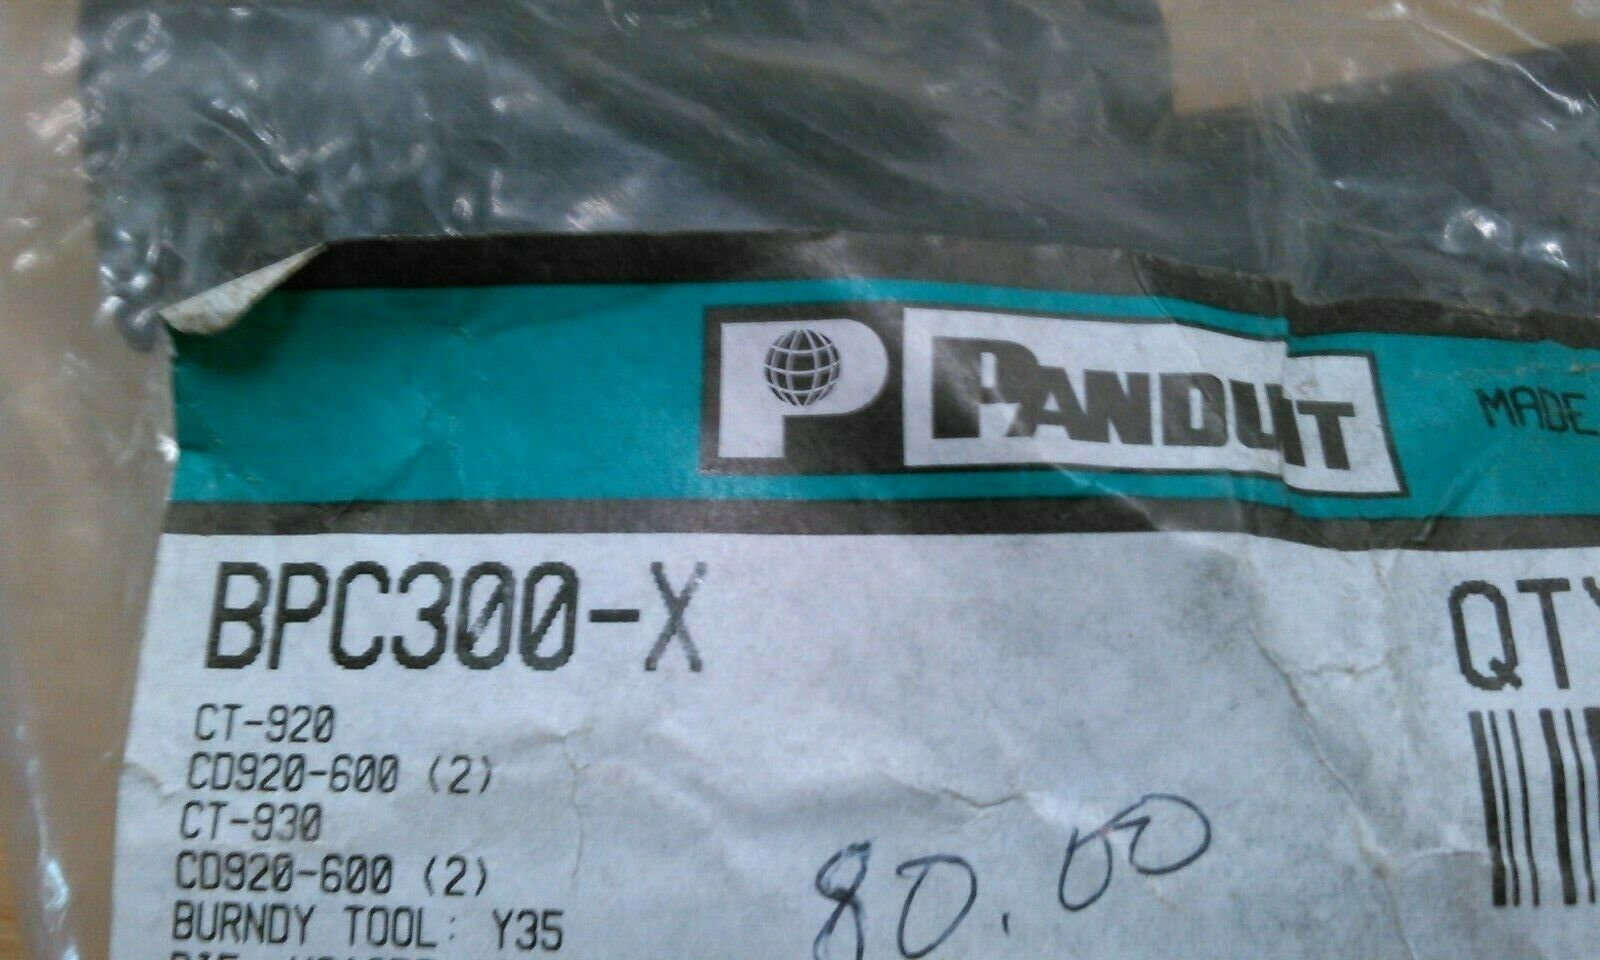 PANDUIT BPC300-X #4/0 AWG CABLE CONNECTOR - $80.00